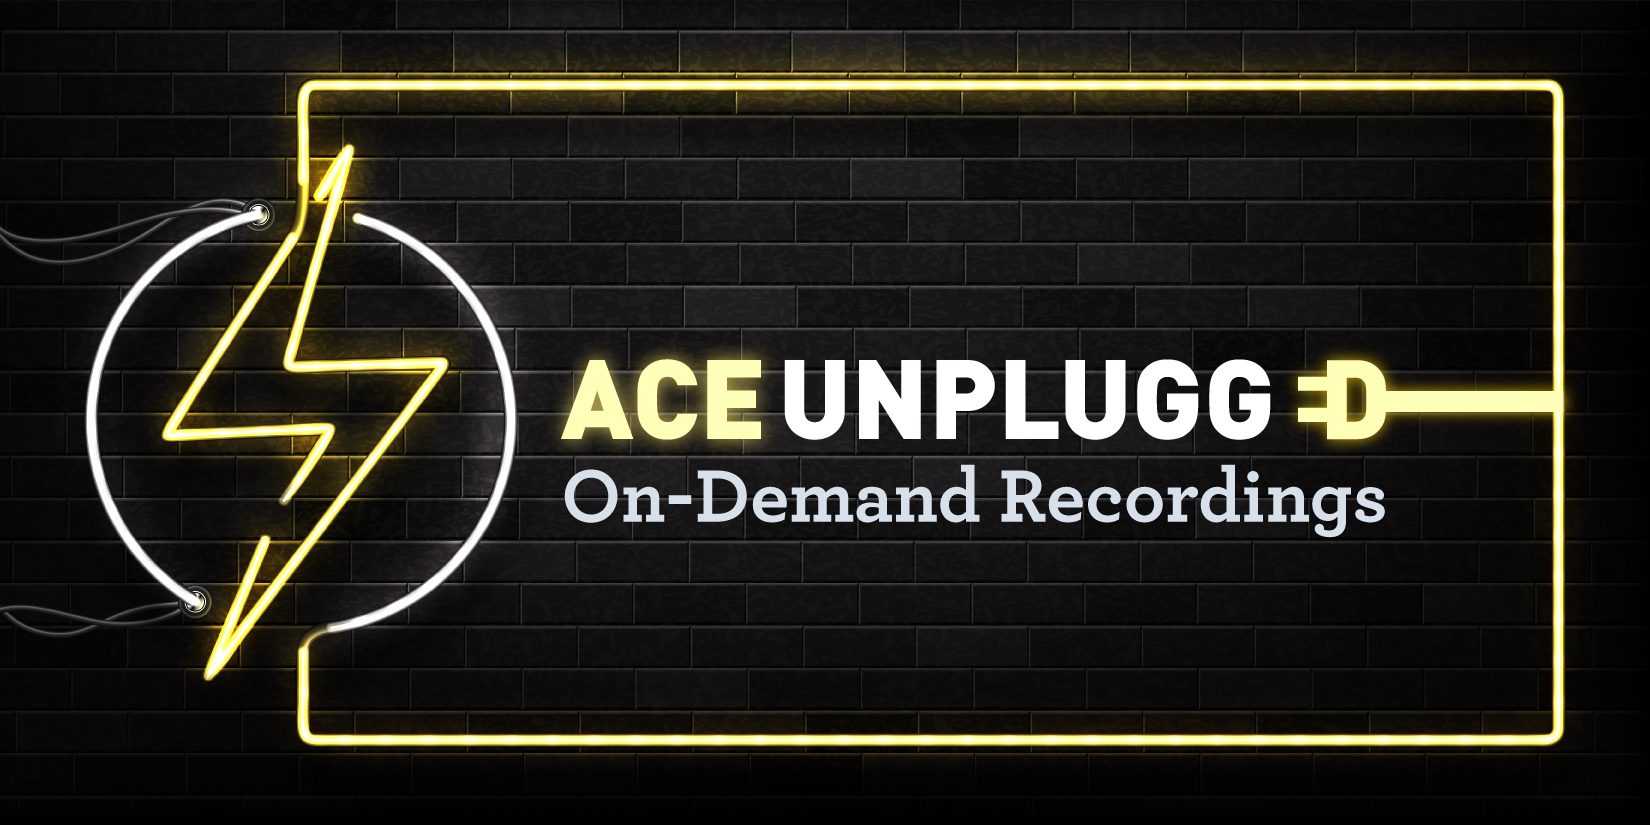 ace unplugged